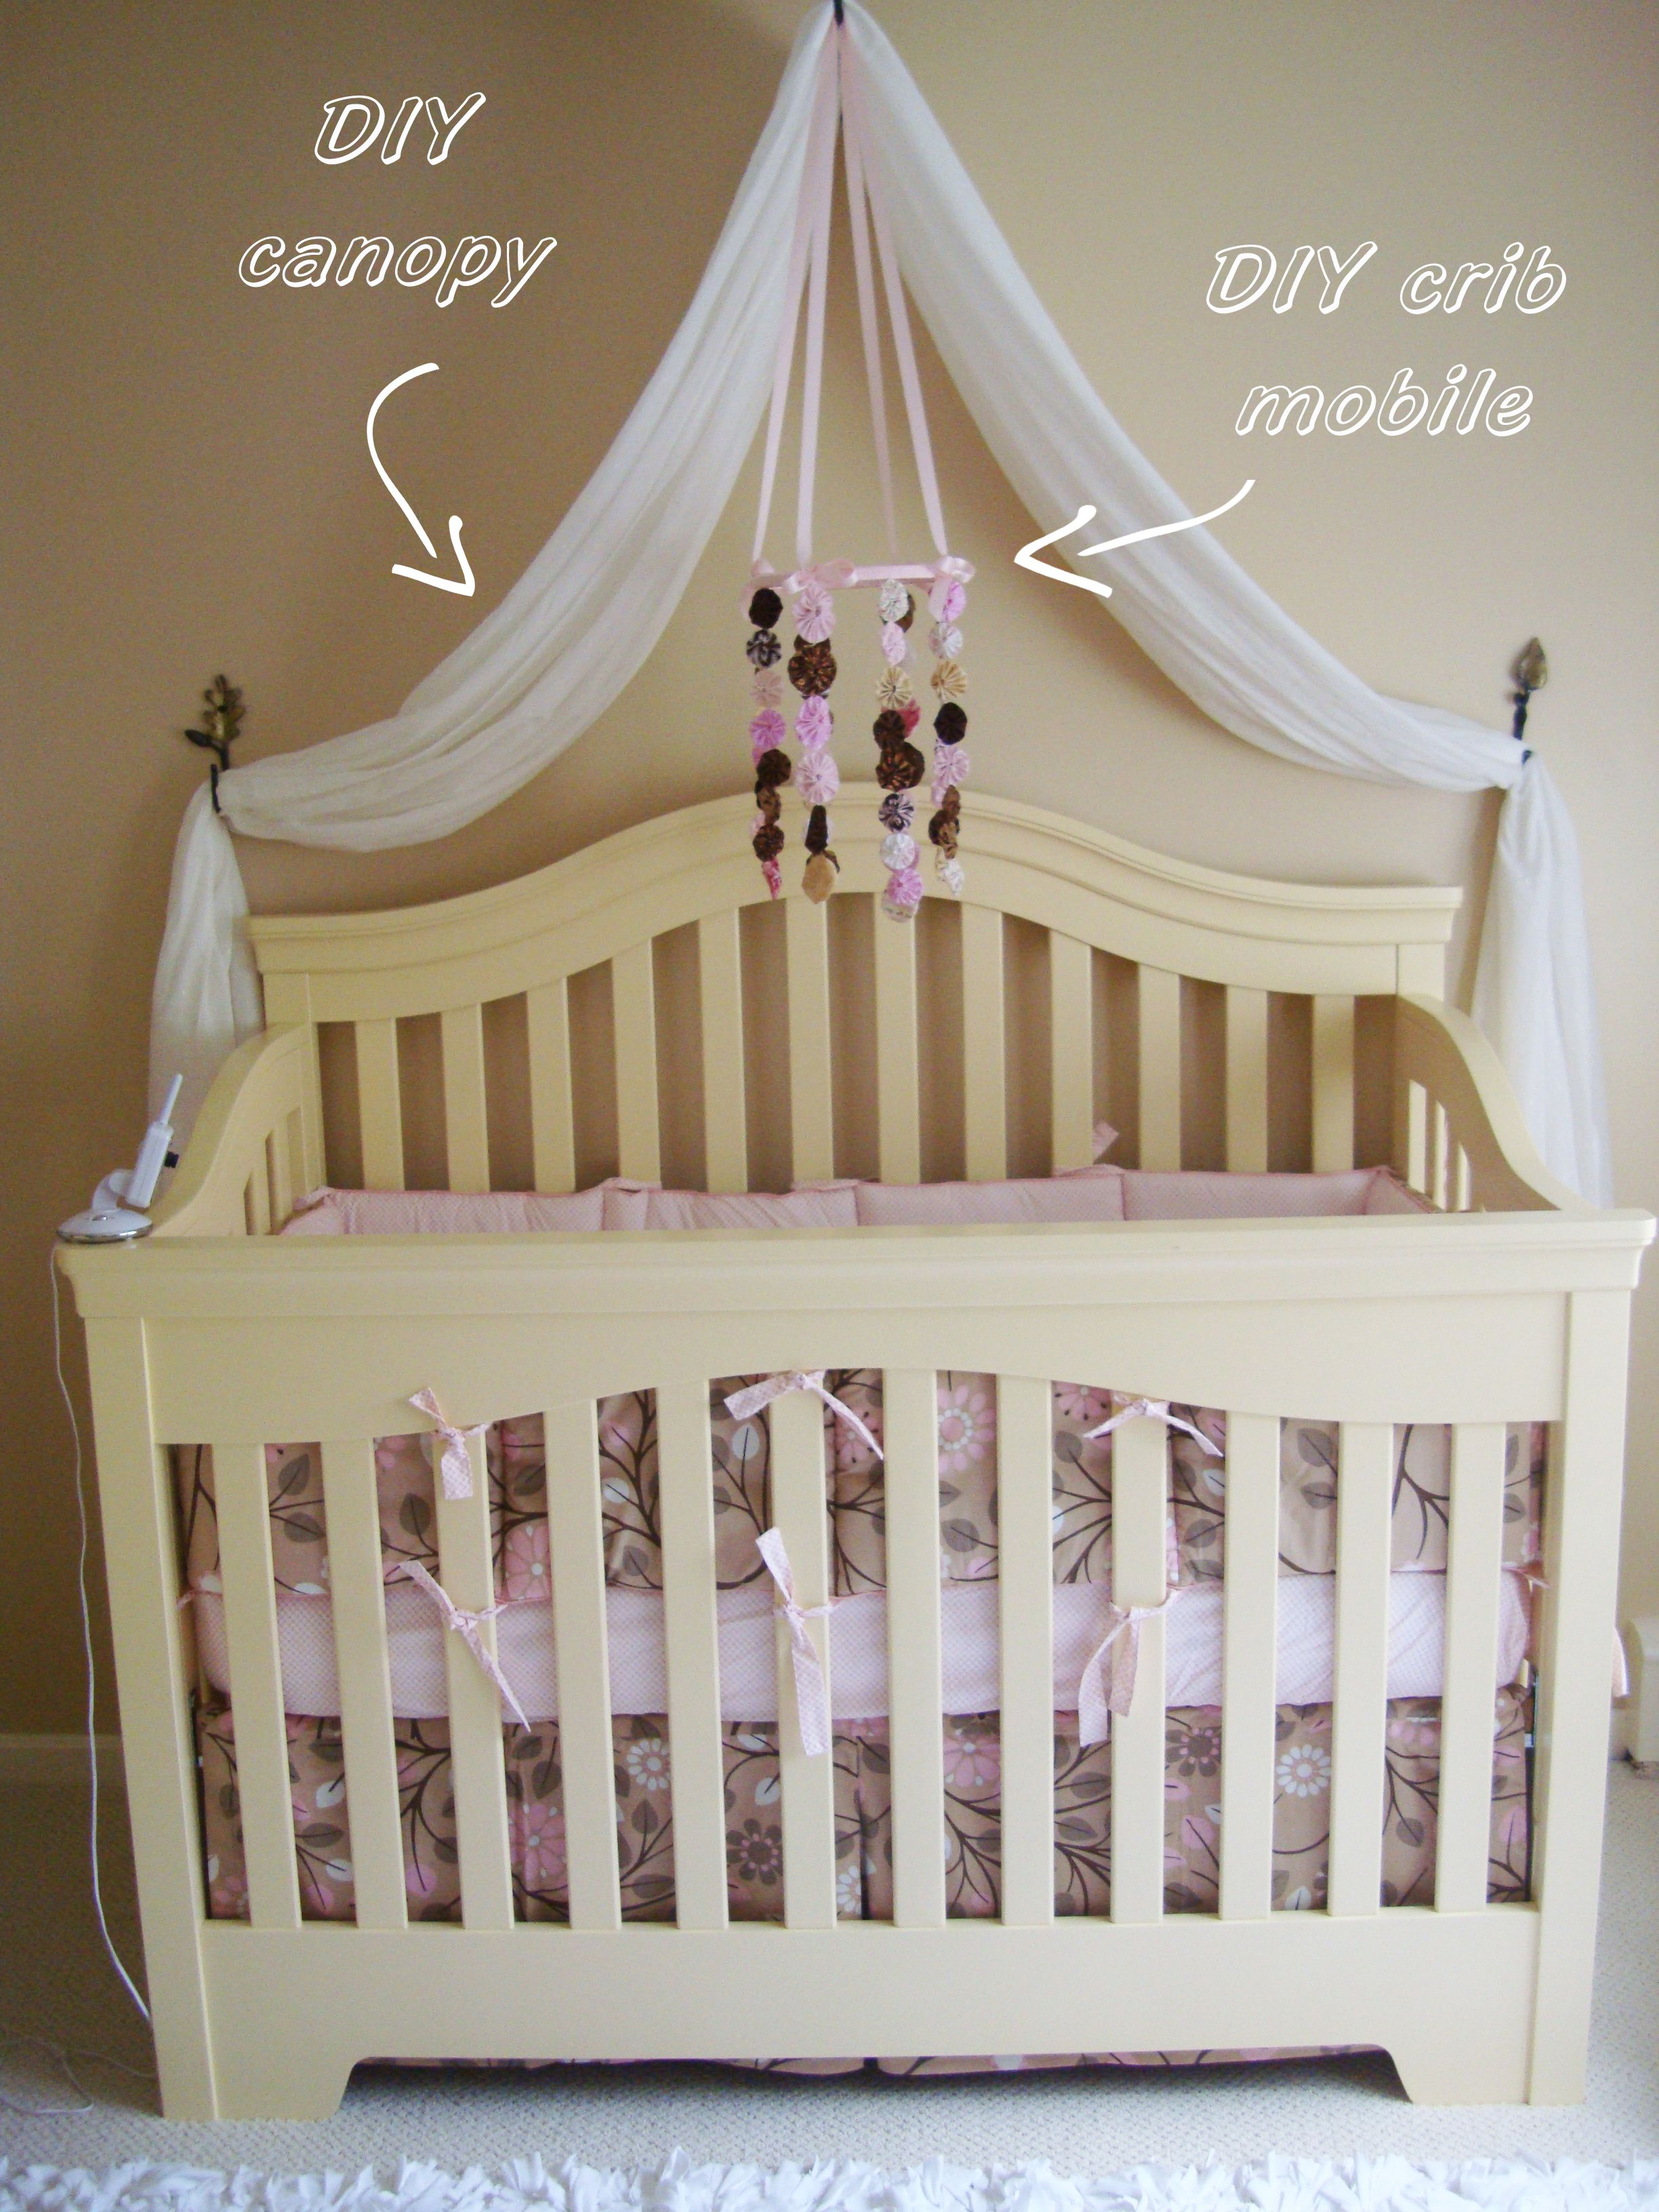 Baby cribs with canopy - Leahs Nursery Diy Canopy 2 White Curtains From Target Sewn Together And Draped With Hooks